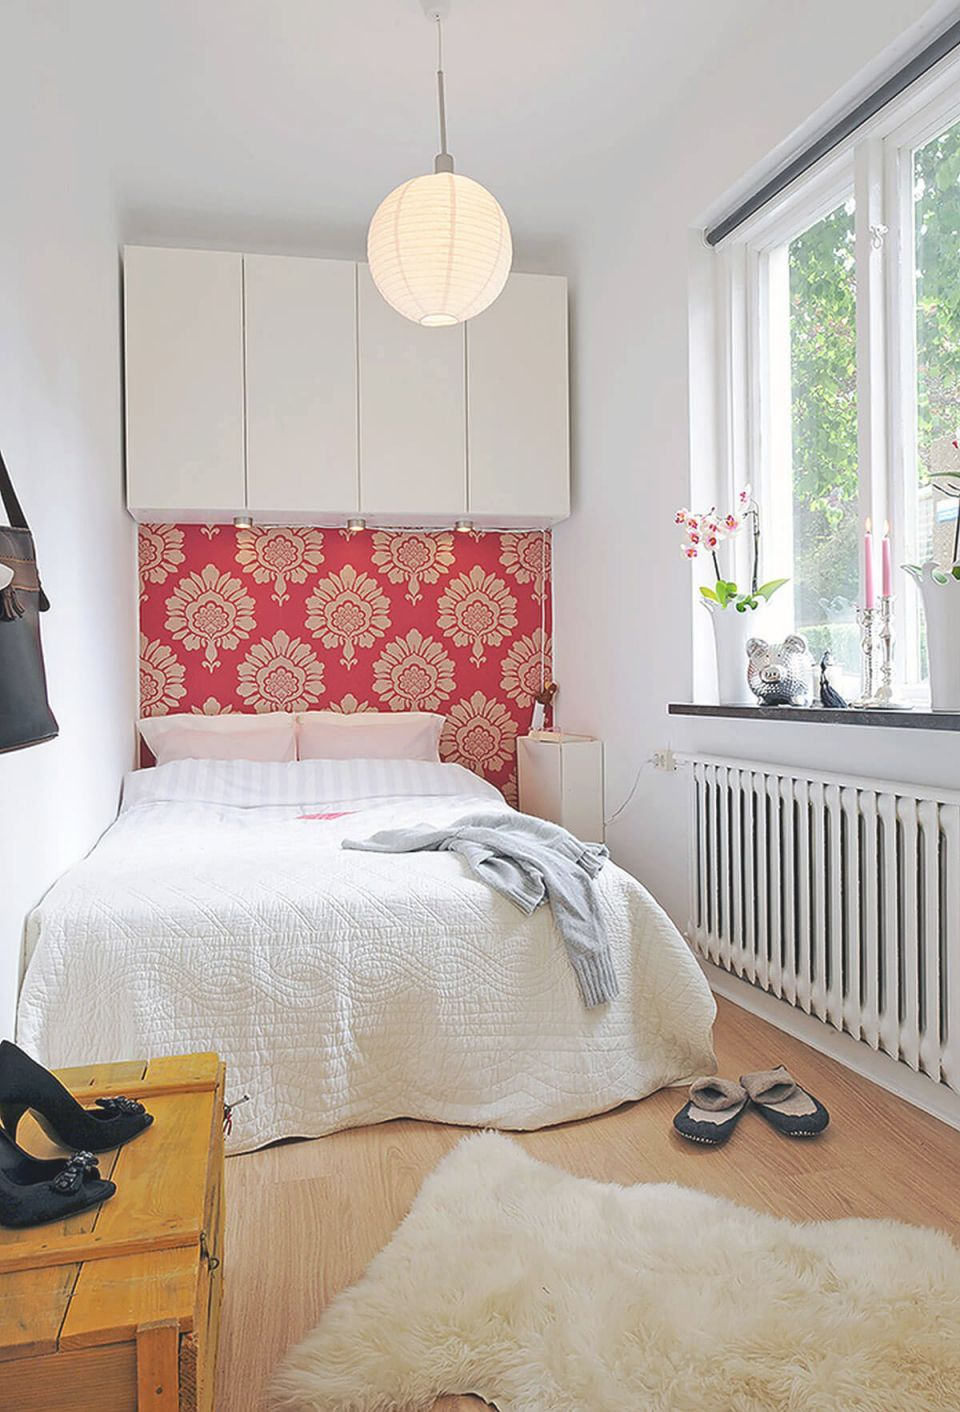 37 Best Small Bedroom Ideas And Designs For 2020 for Decorating Ideas For Small Bedroom